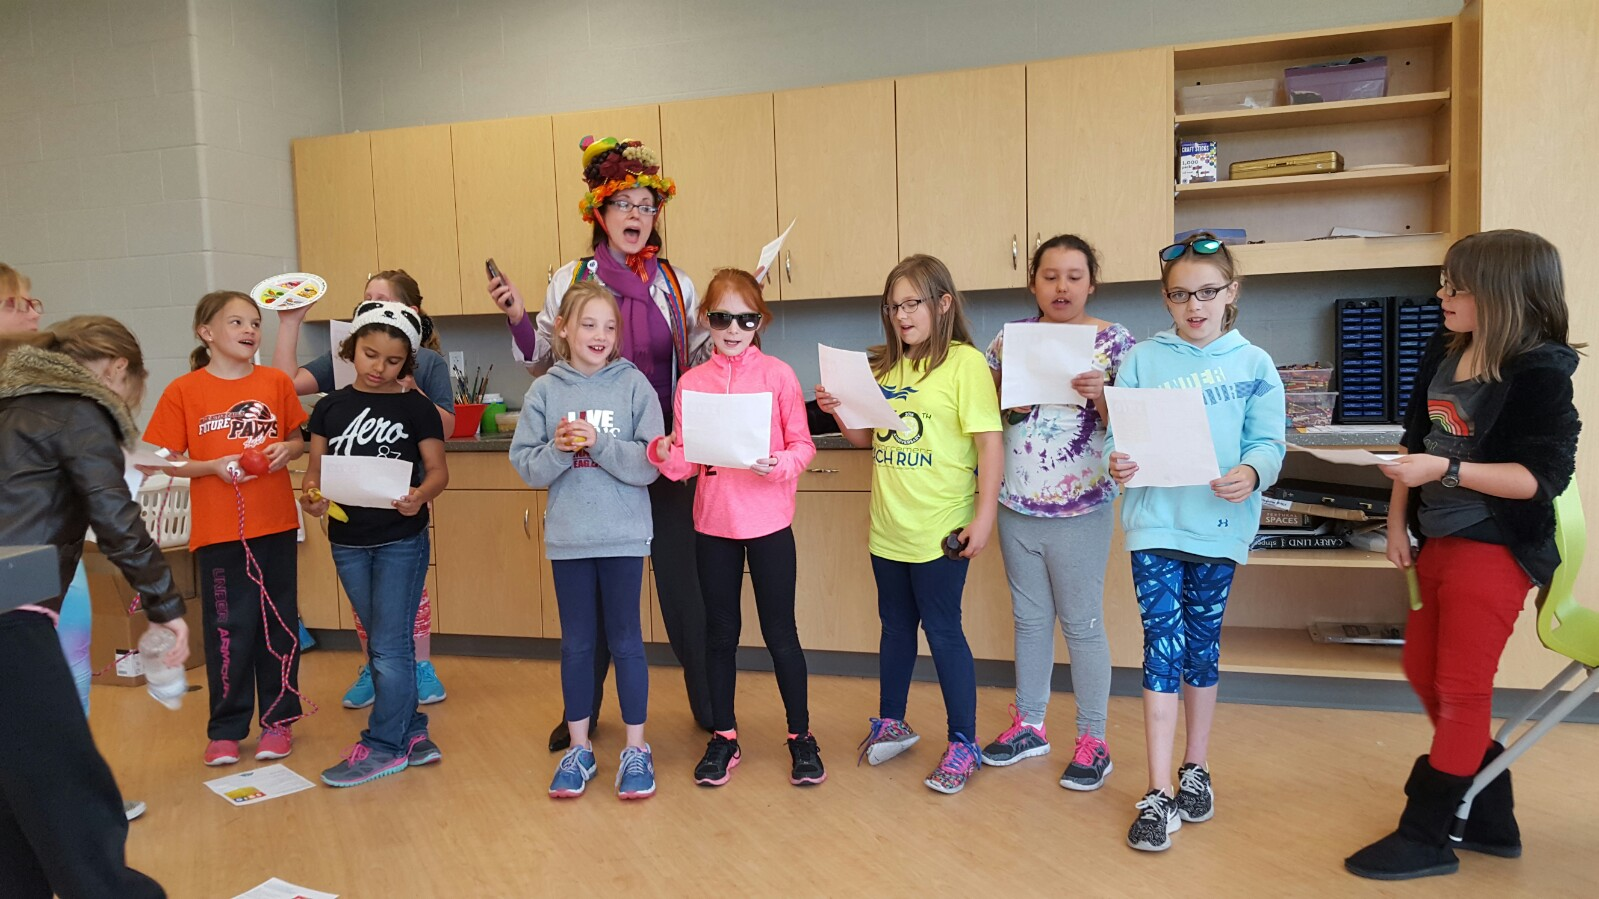 """""""FRUITY RUTY"""" sings the 5-2-1-0 Song with Laces to Leaders Participants"""